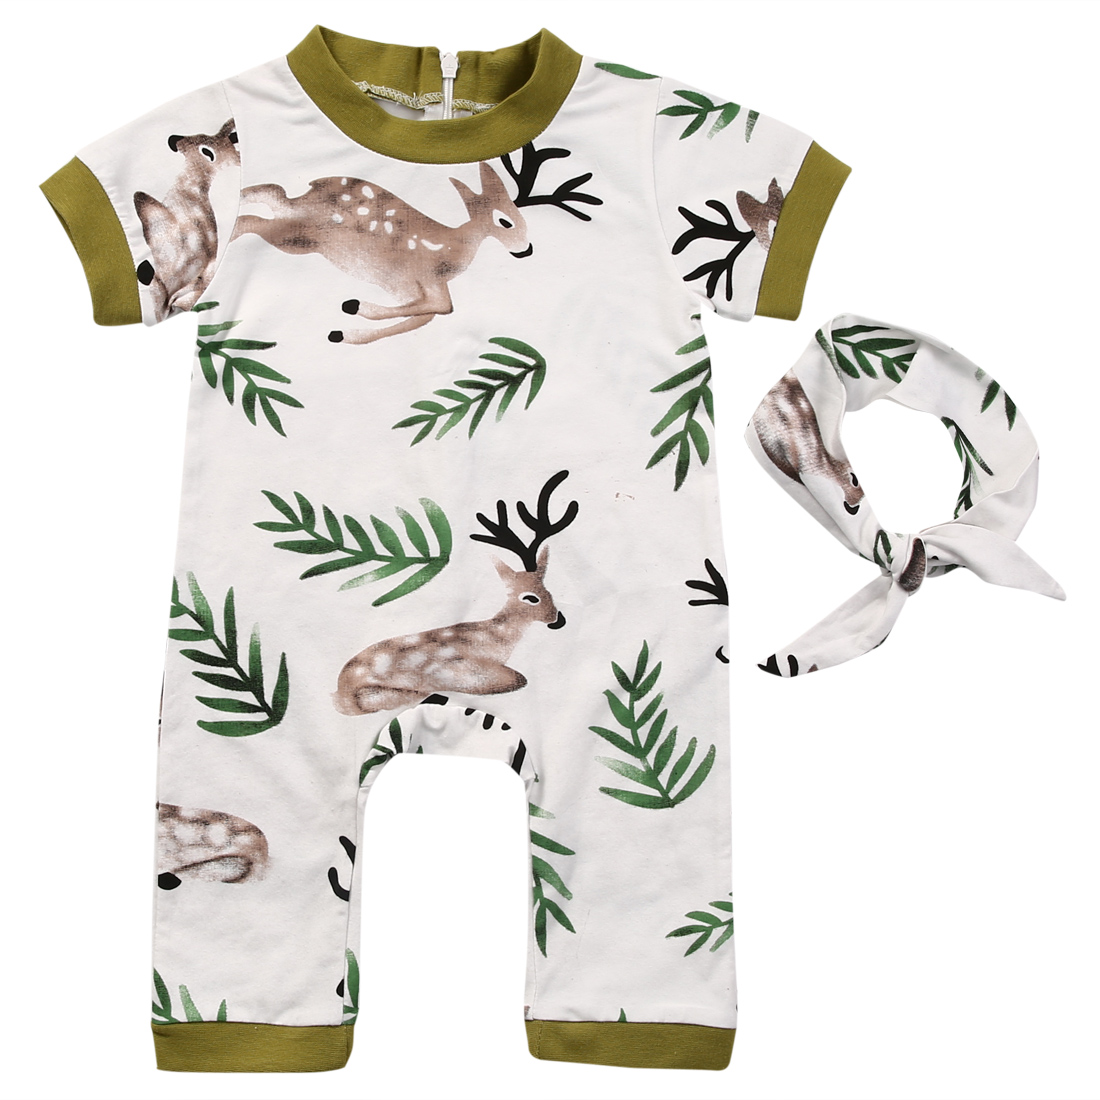 Cute Newborn Baby Romper Clothes 0-24M Short Sleeve Bebes Bodysuit Jumpsuit Deer Zipper Sunsuit +Headband 2PCS Outfit Tracksuit 2017 floral baby romper newborn baby girl clothes ruffles sleeve bodysuit headband 2pcs outfit bebek giyim sunsuit 0 24m